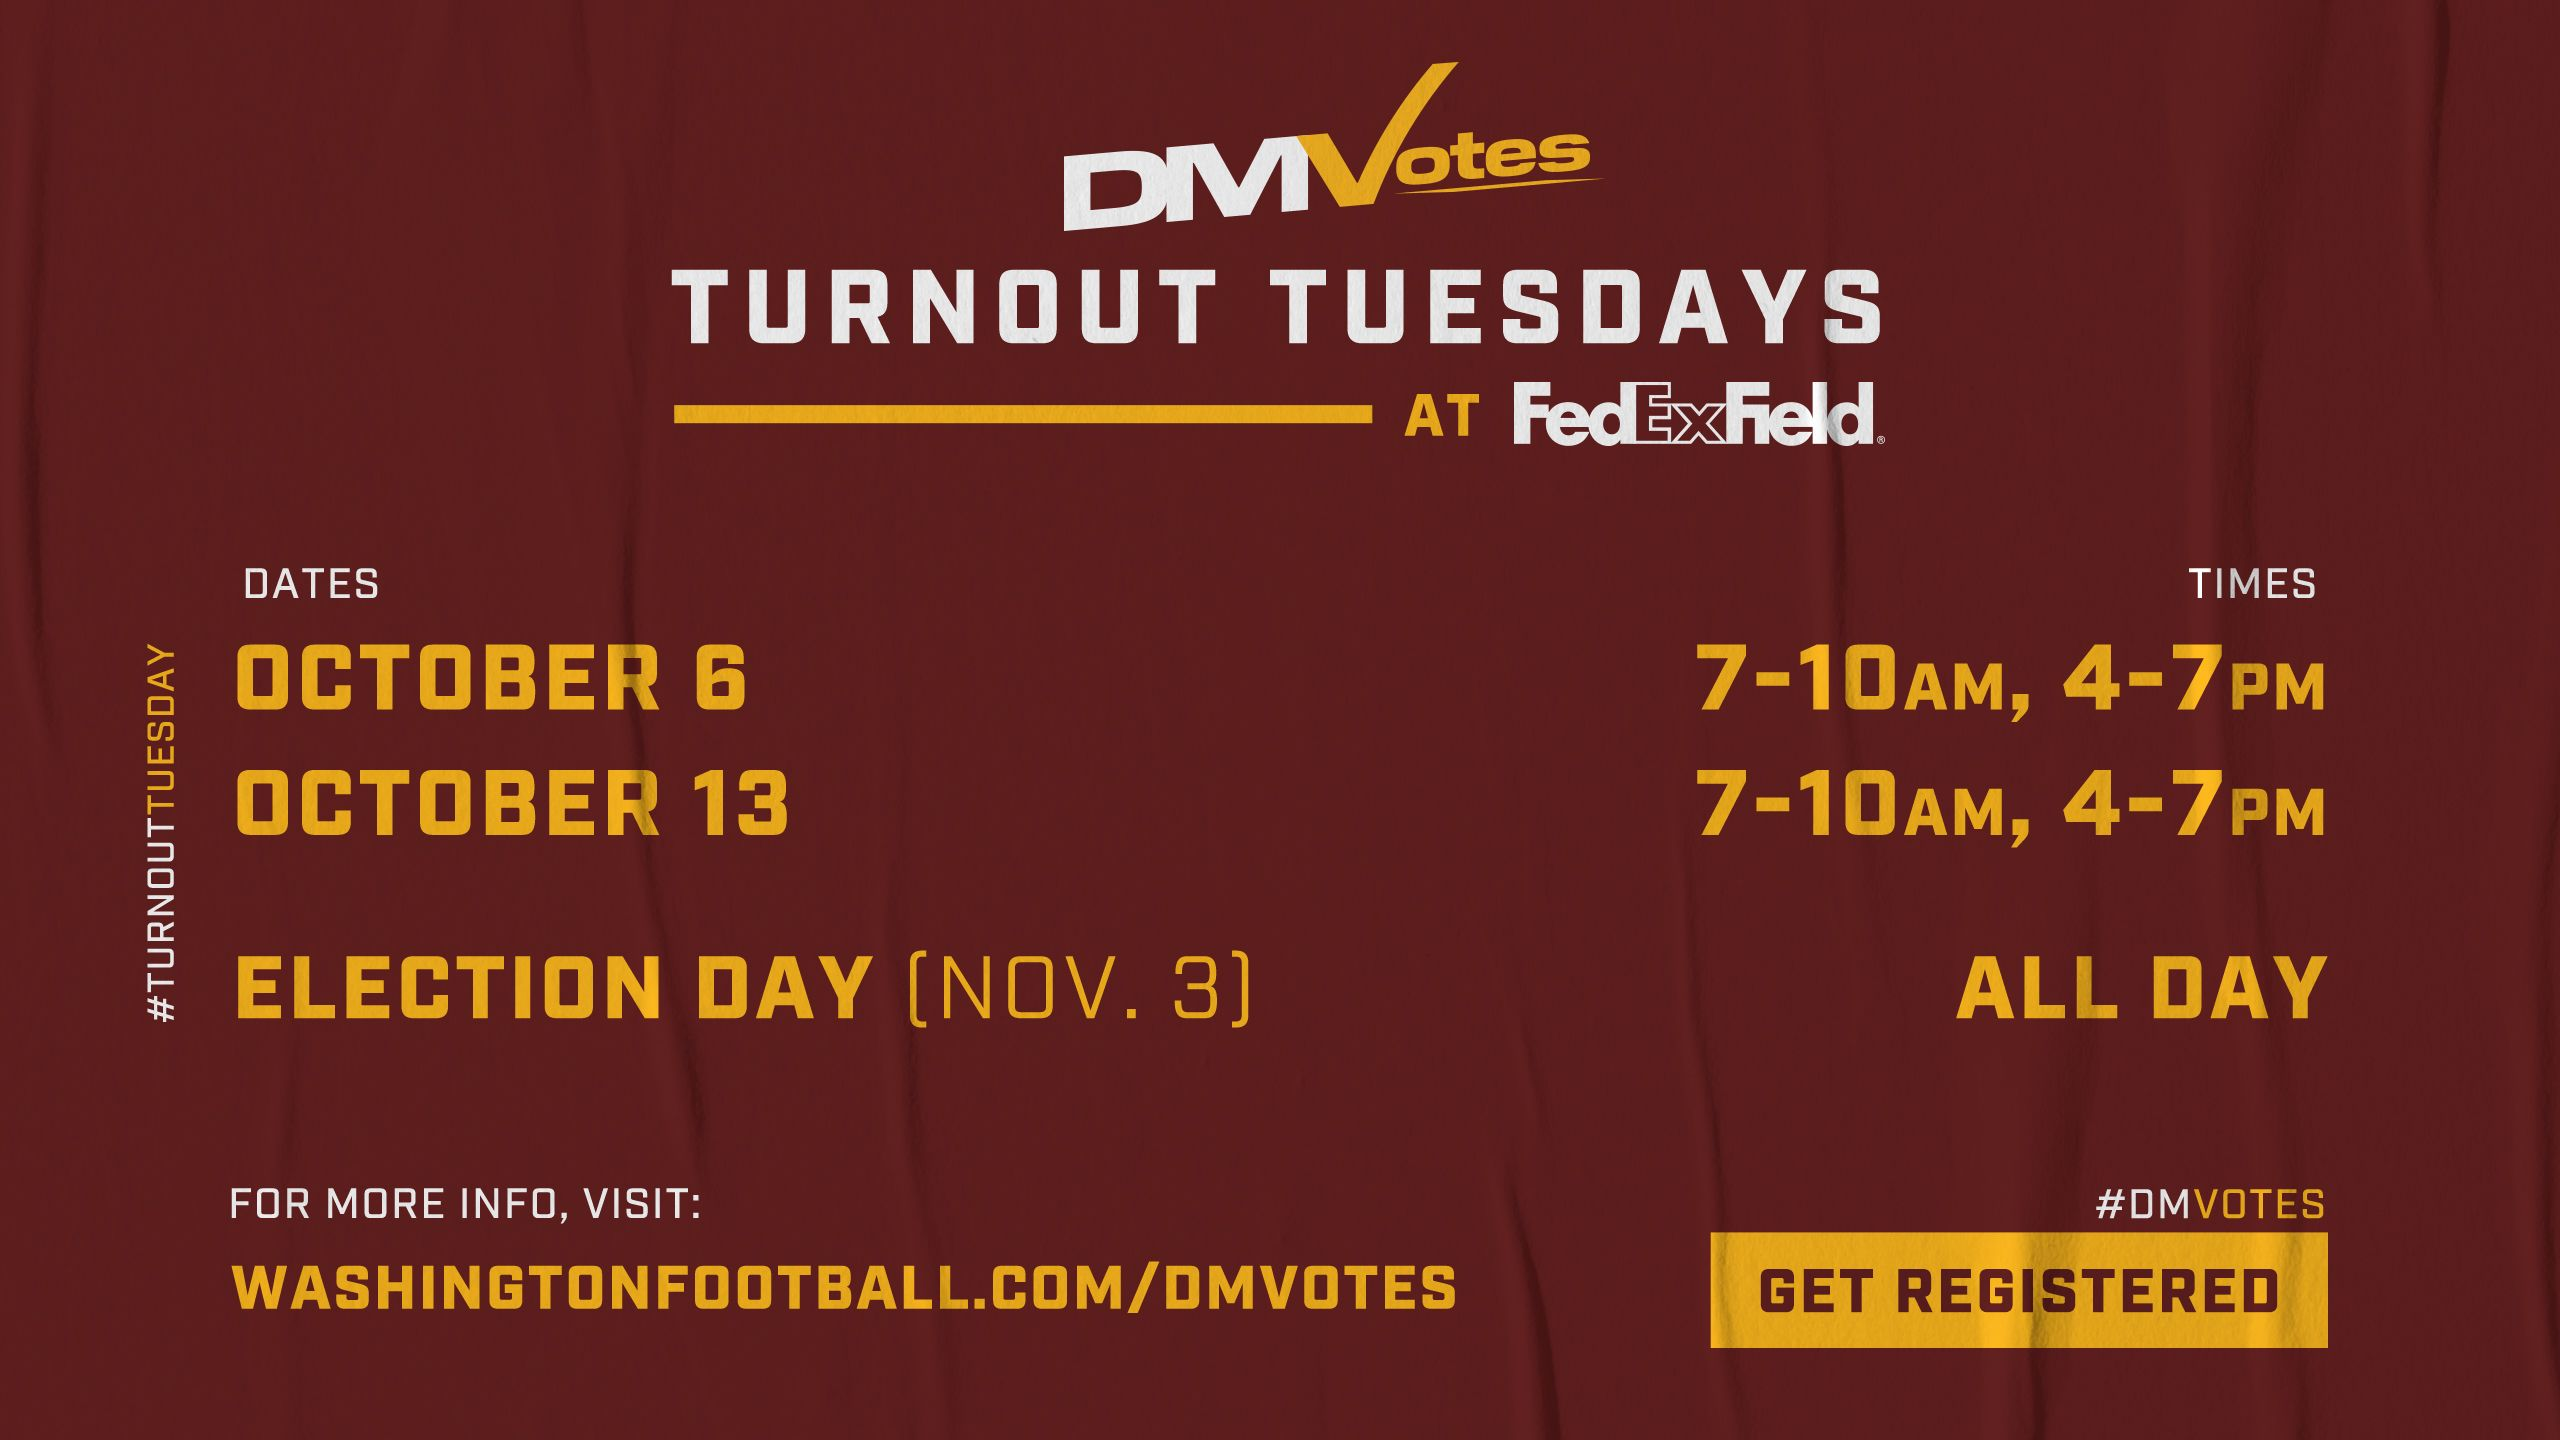 DMVotes Turnout Tuesday